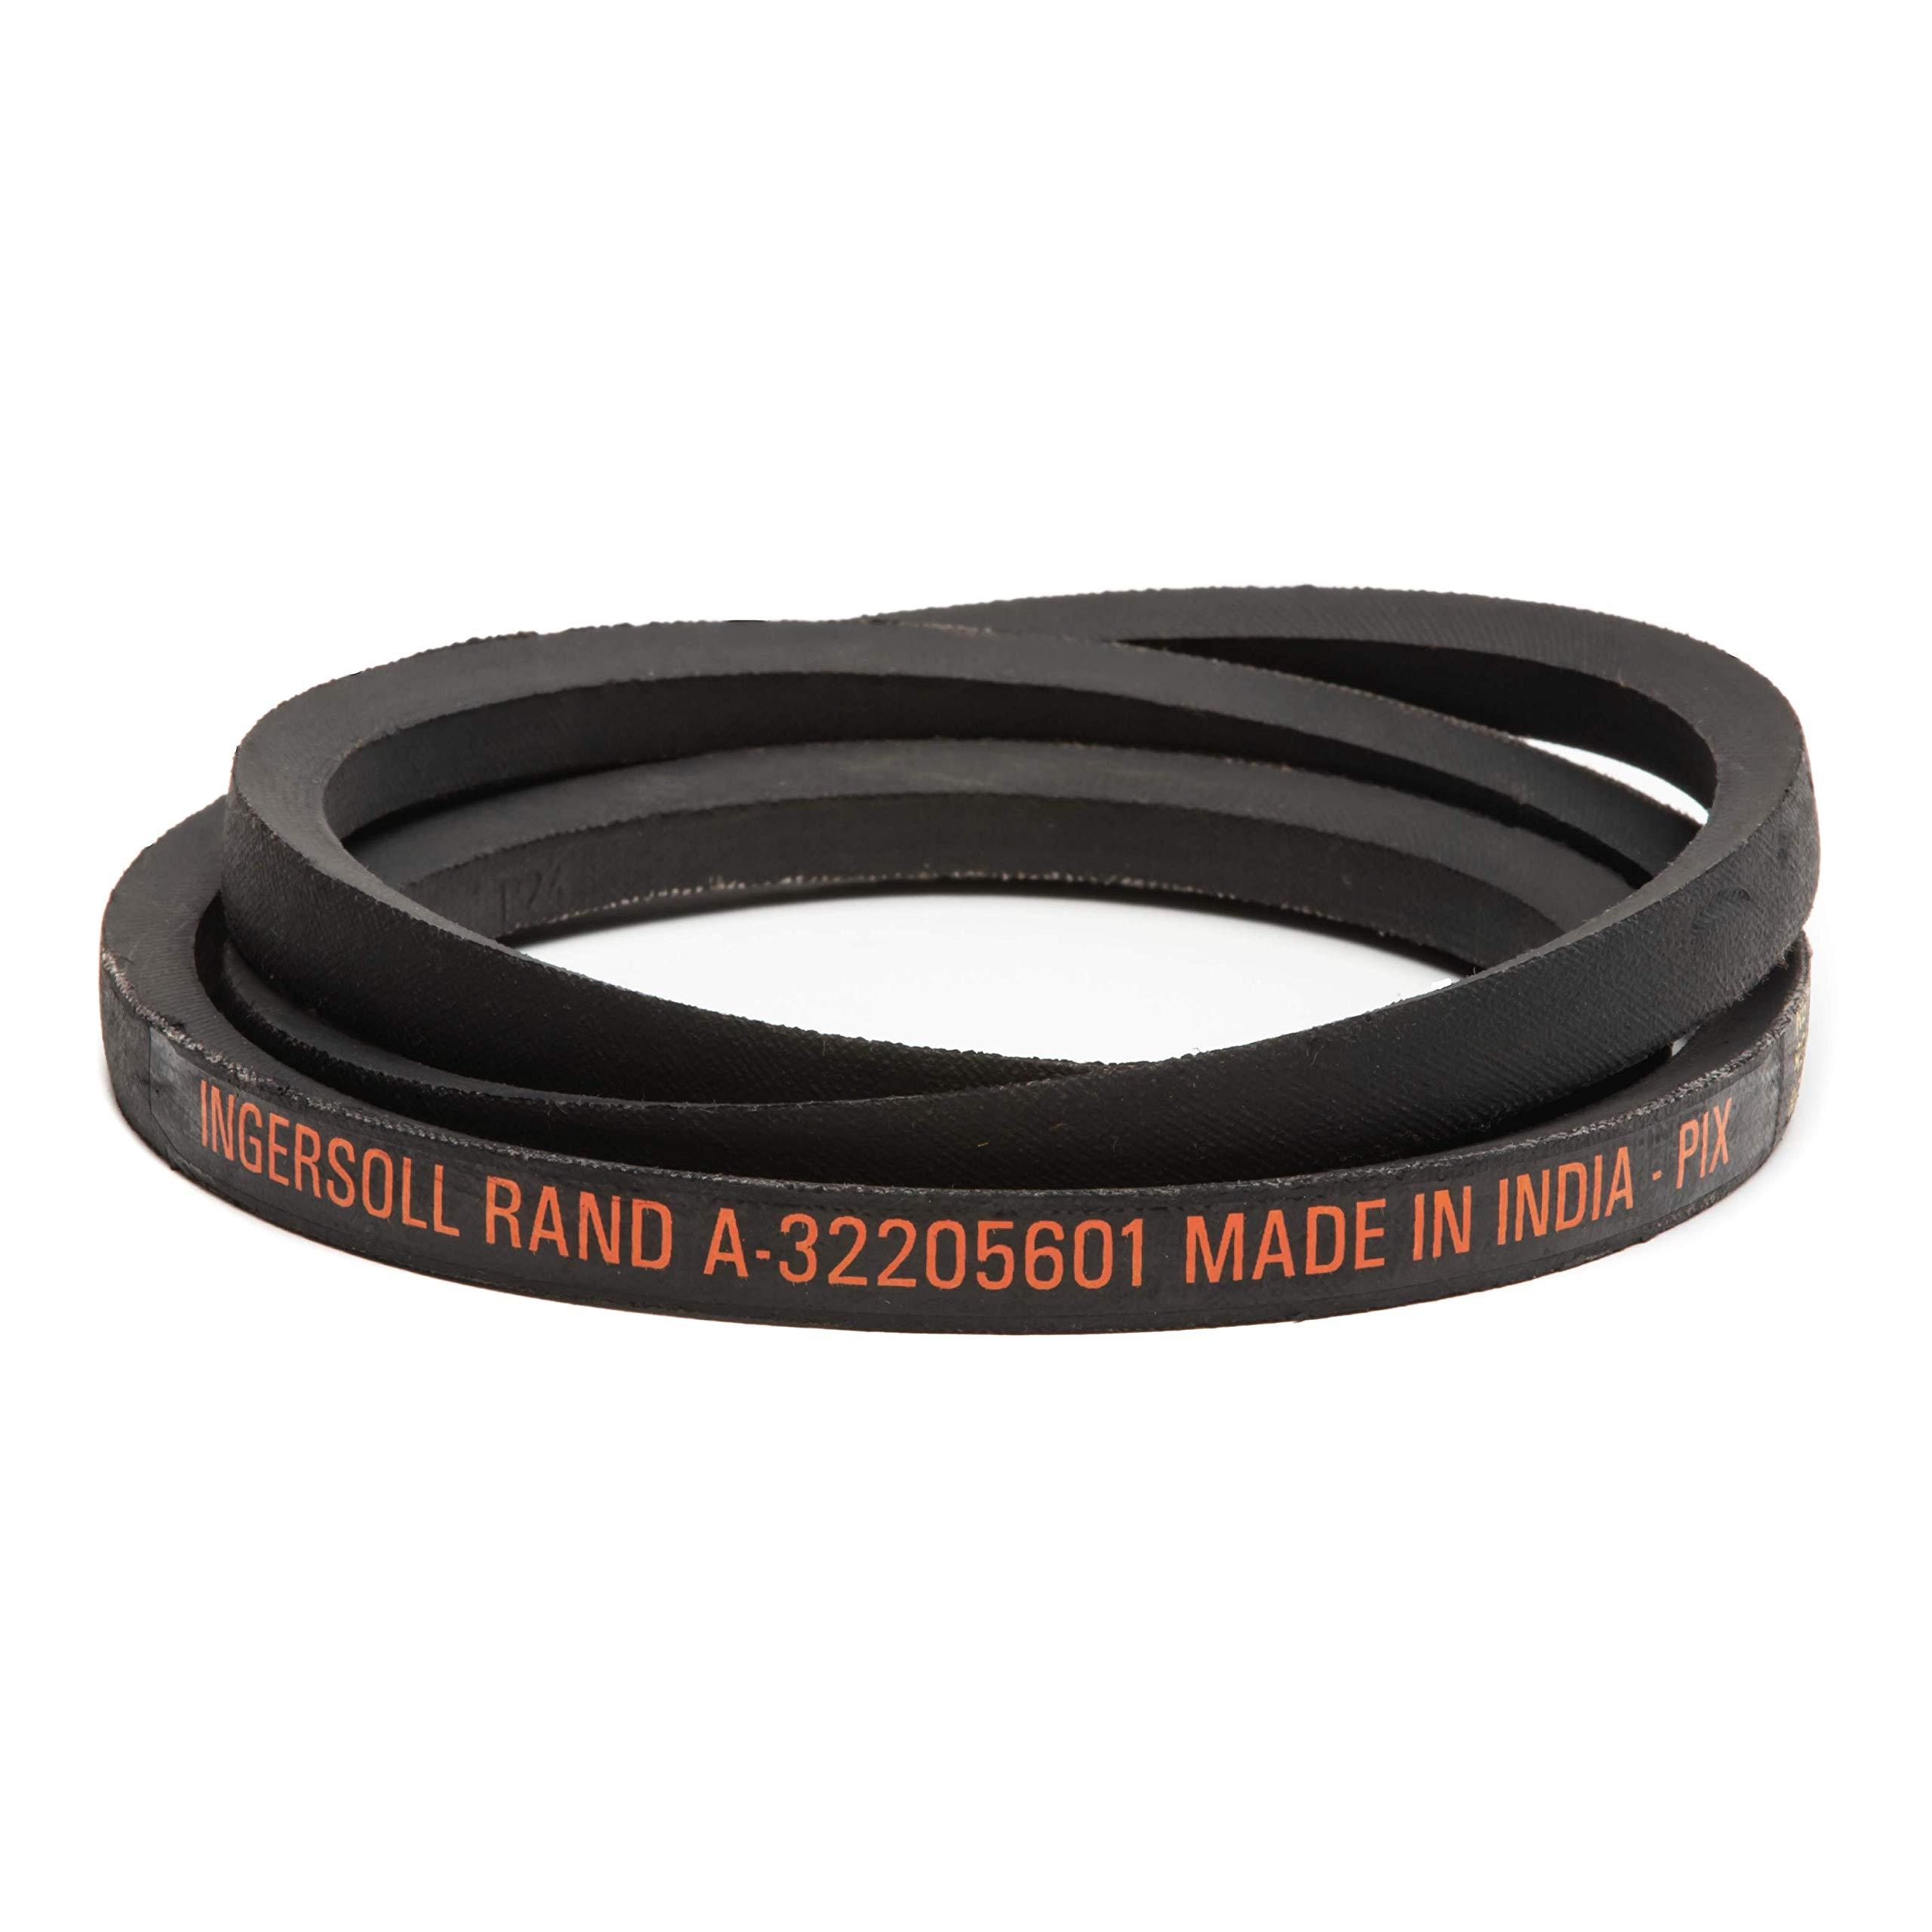 Belt for SS3J5.5GH-WB & SS3J5.5GK-WB Compressors by Ingersoll Rand